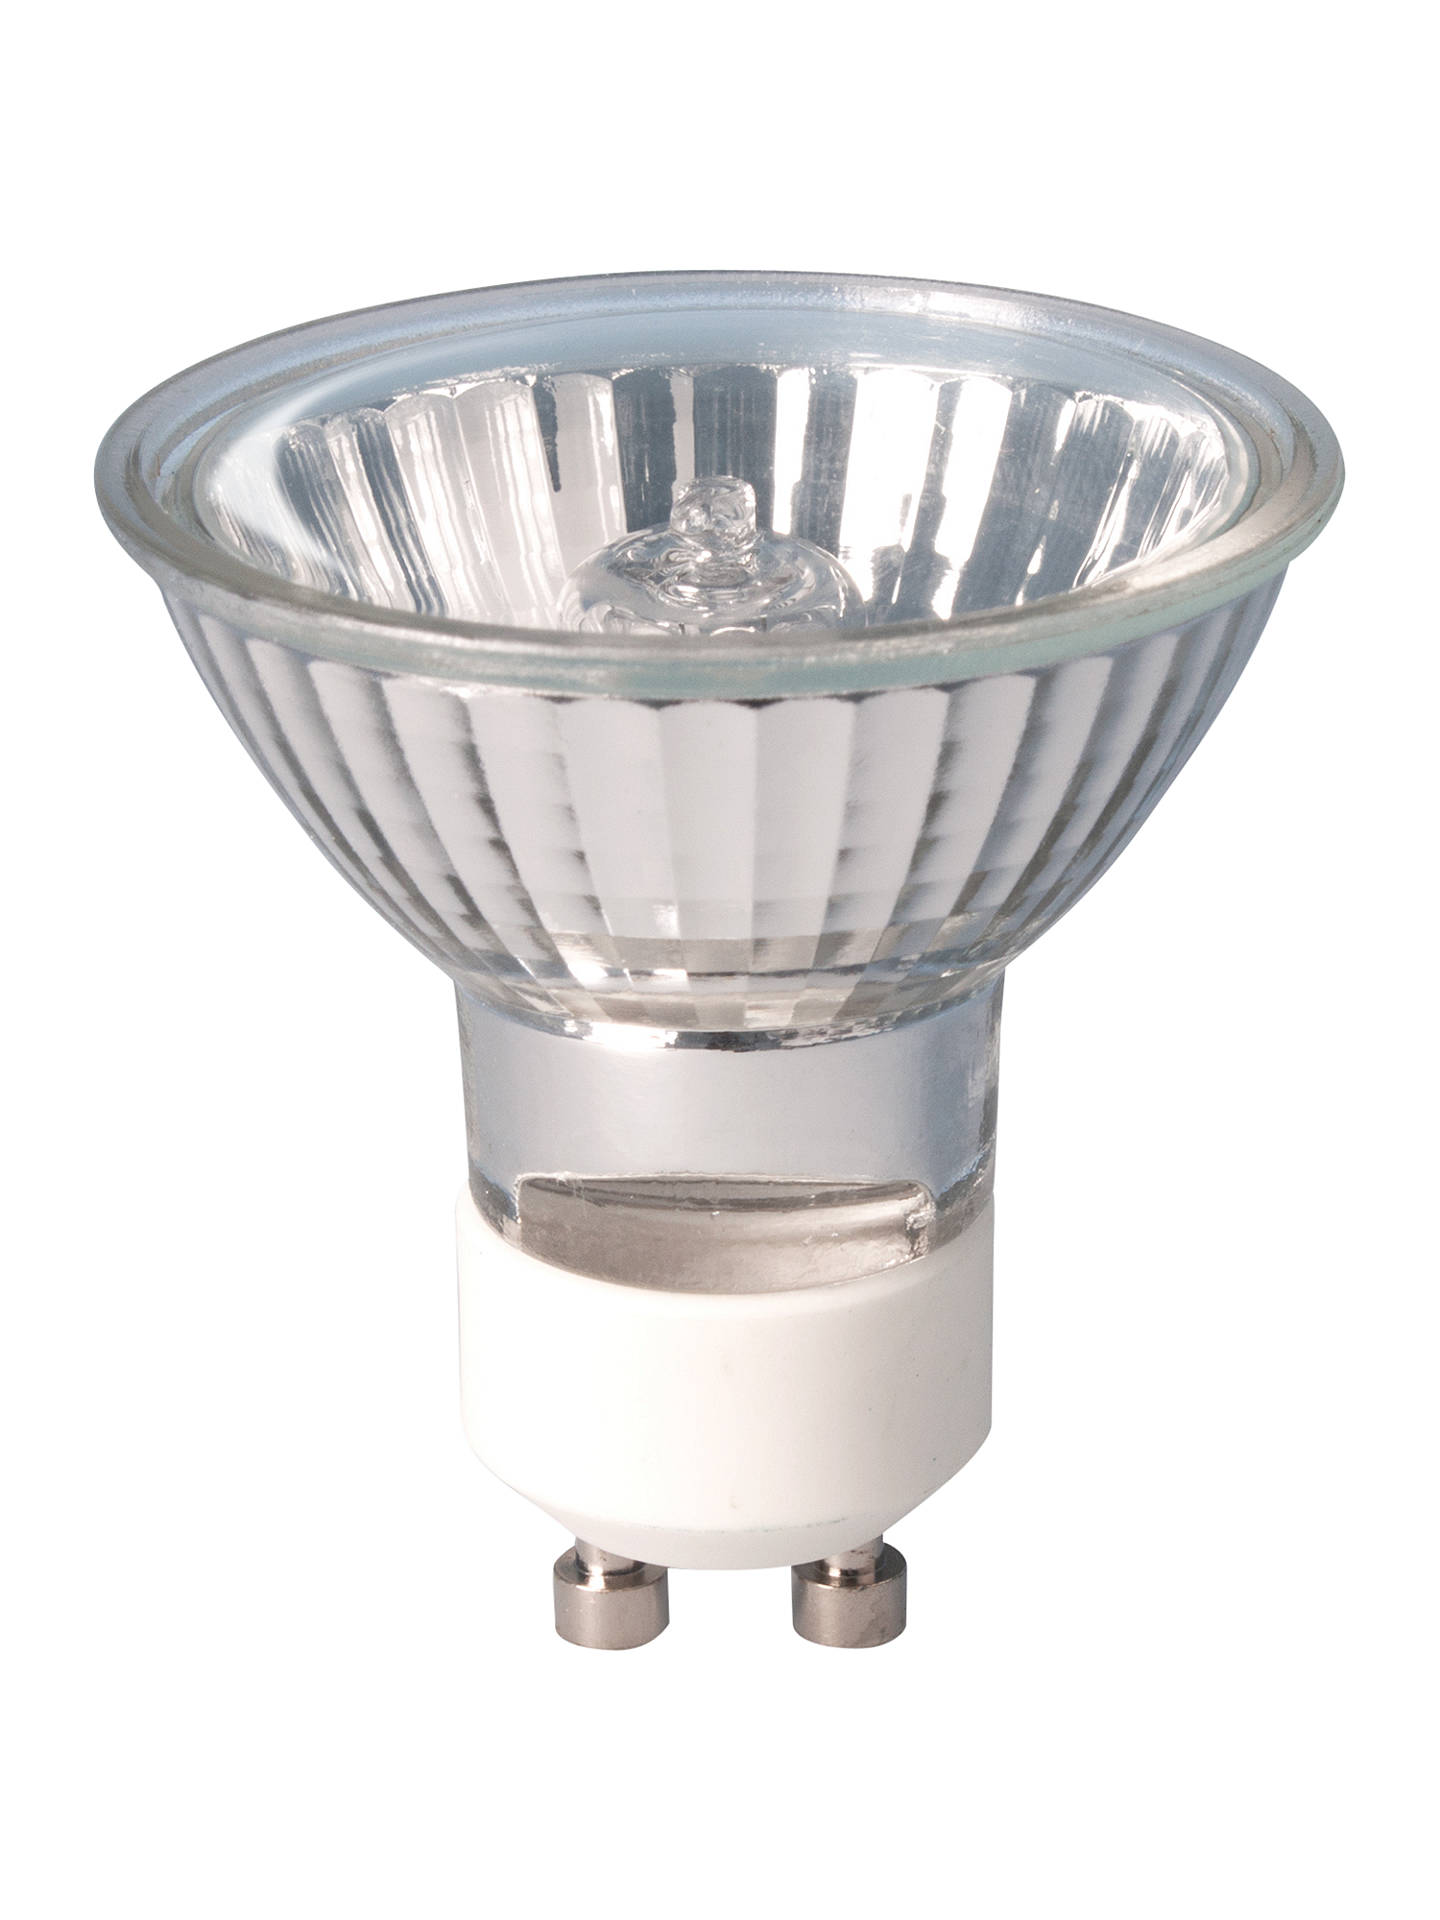 BuyCalex 28W 50mm GU10 Eco Halogen Spotlight, Pack of 3 Online at johnlewis.com